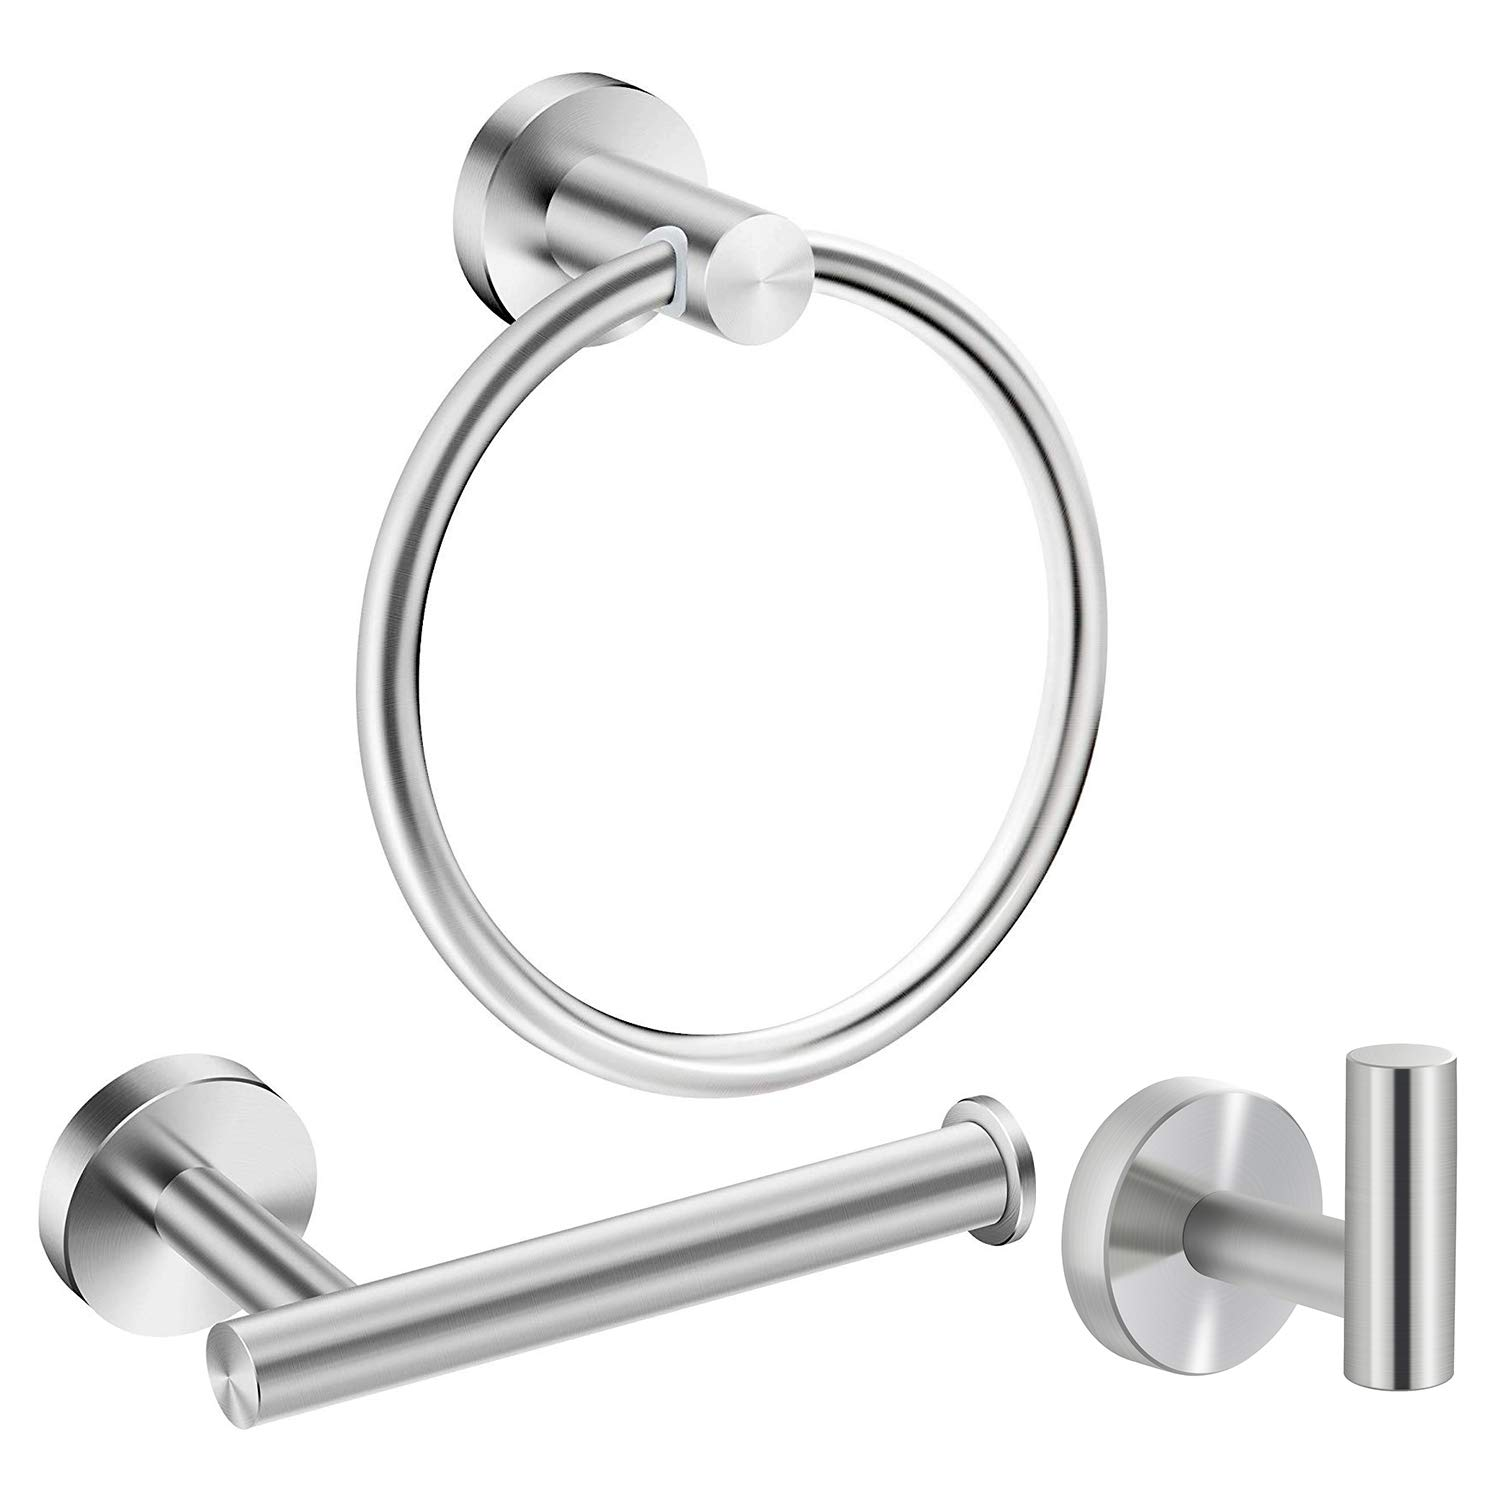 Marmolux Acc Bathroom Hardware Accessories Set Stainless Steel Brushed 3- Piece Set Includes Hand Towel Ring, Toilet Paper Holder, Robe Hook Heavy Duty Paper Towel Holder Hanger